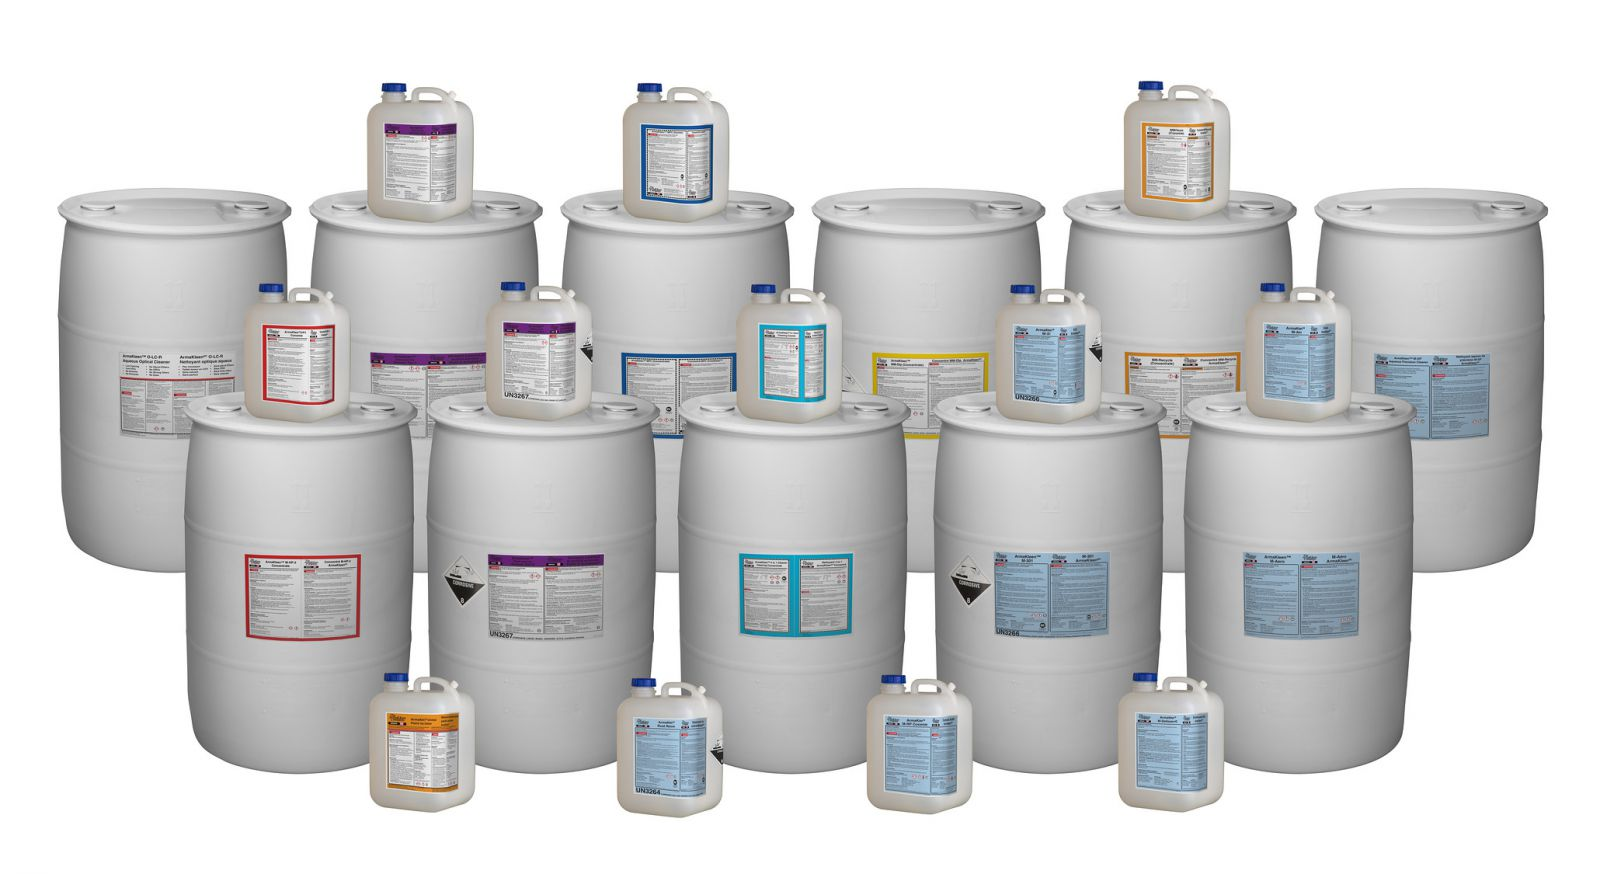 ArmaKleen aqueous cleaners in 55 gallon drums. Most of ArmaKleen's aqueous cleaners meet all applicable VOC laws and many contain absolutely no VOCs.